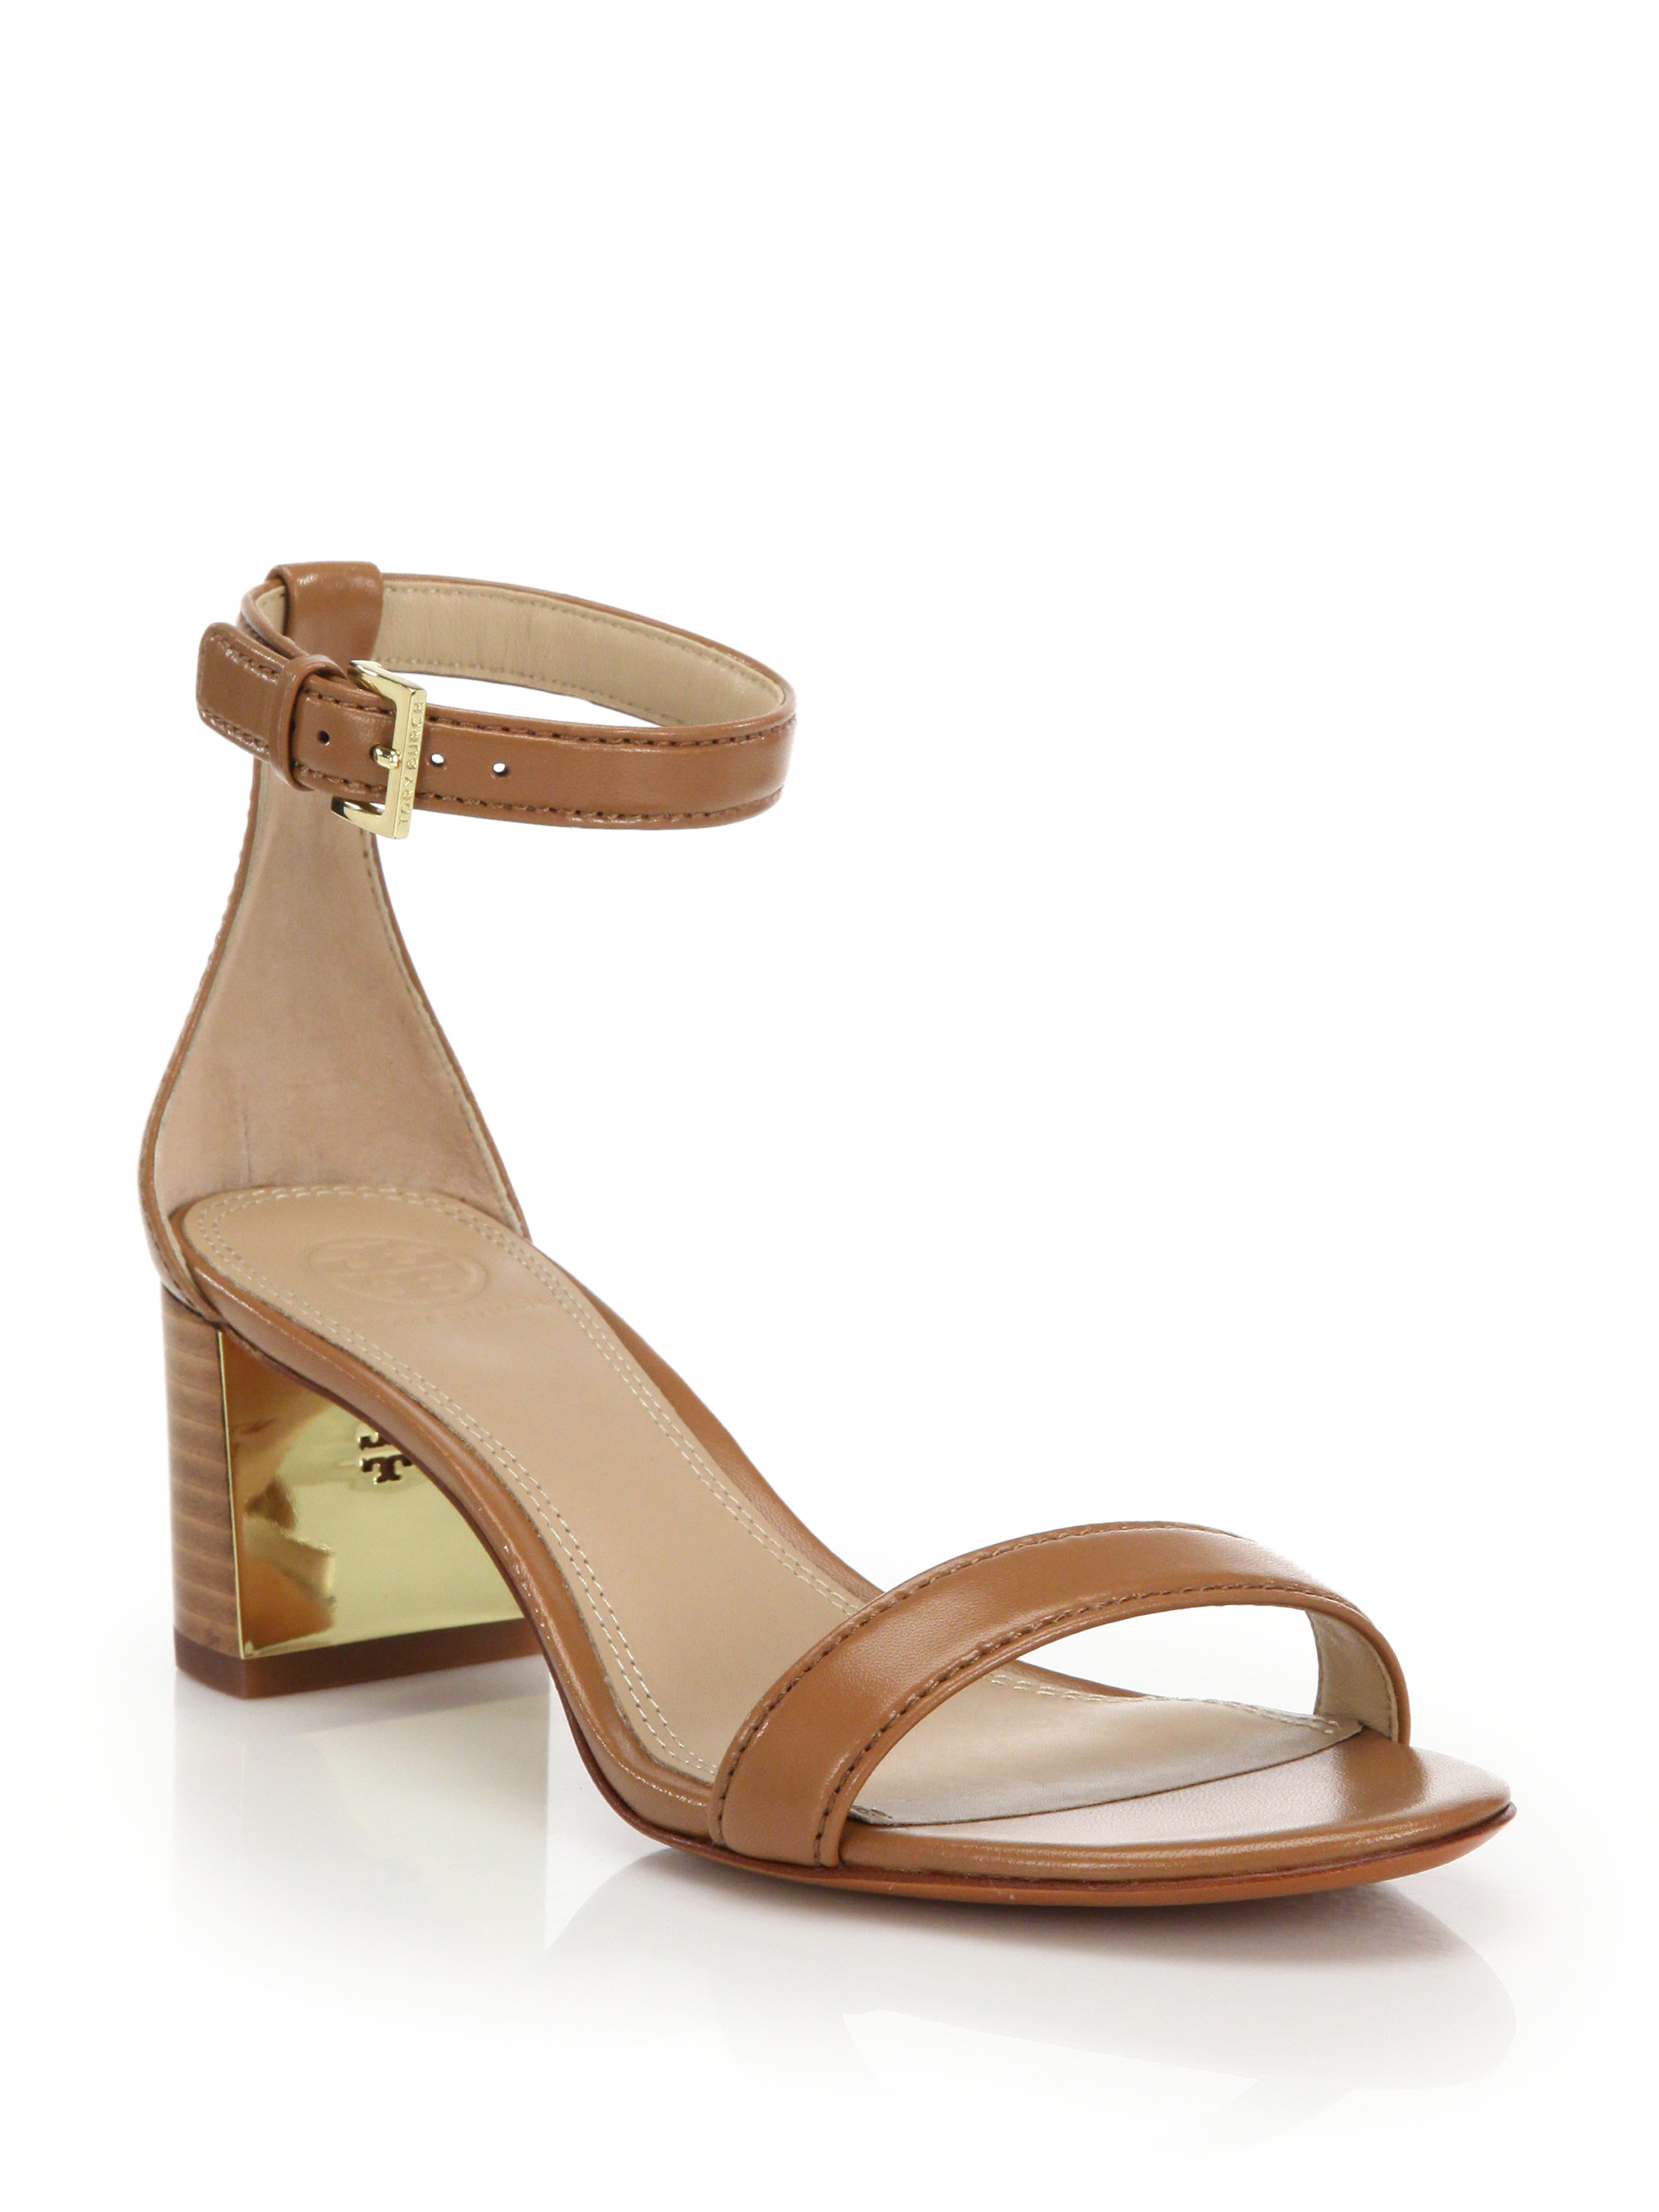 120ffb06706 Lyst - Tory Burch Cecile Leather Mid-heel Sandals in Brown